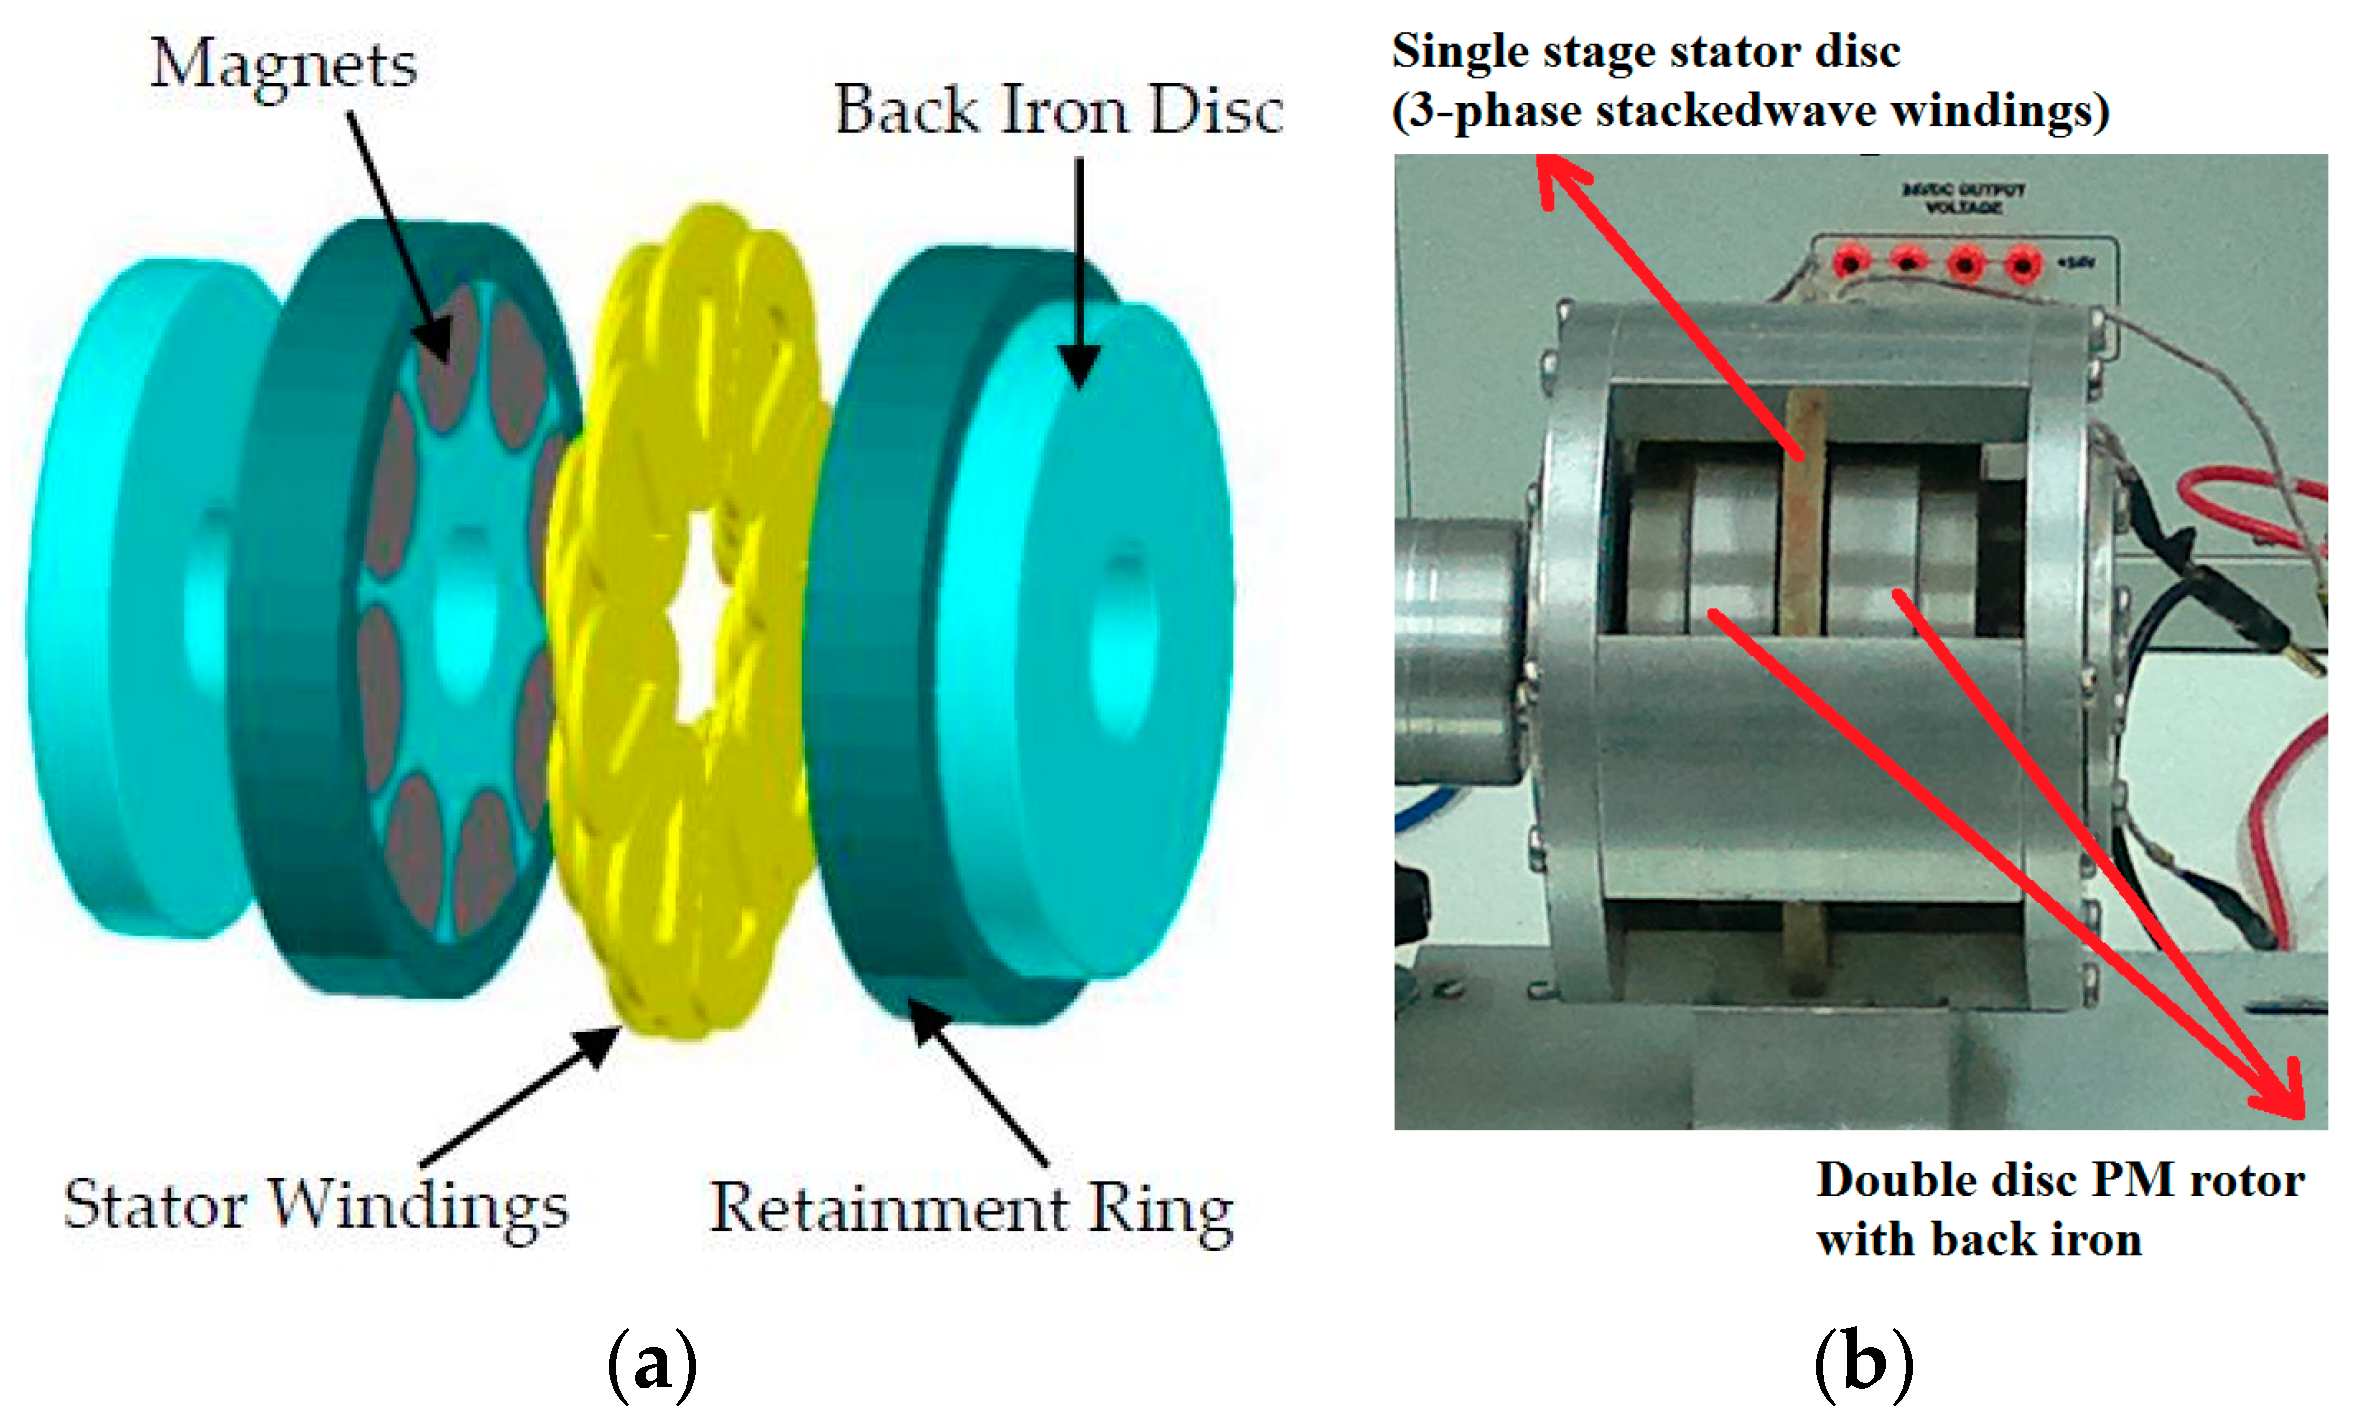 Energies Free Full Text Development Of Automotive Permanent Torque Control In Electric Vehicle Propulsion Systems Intechopen 11 00274 G001